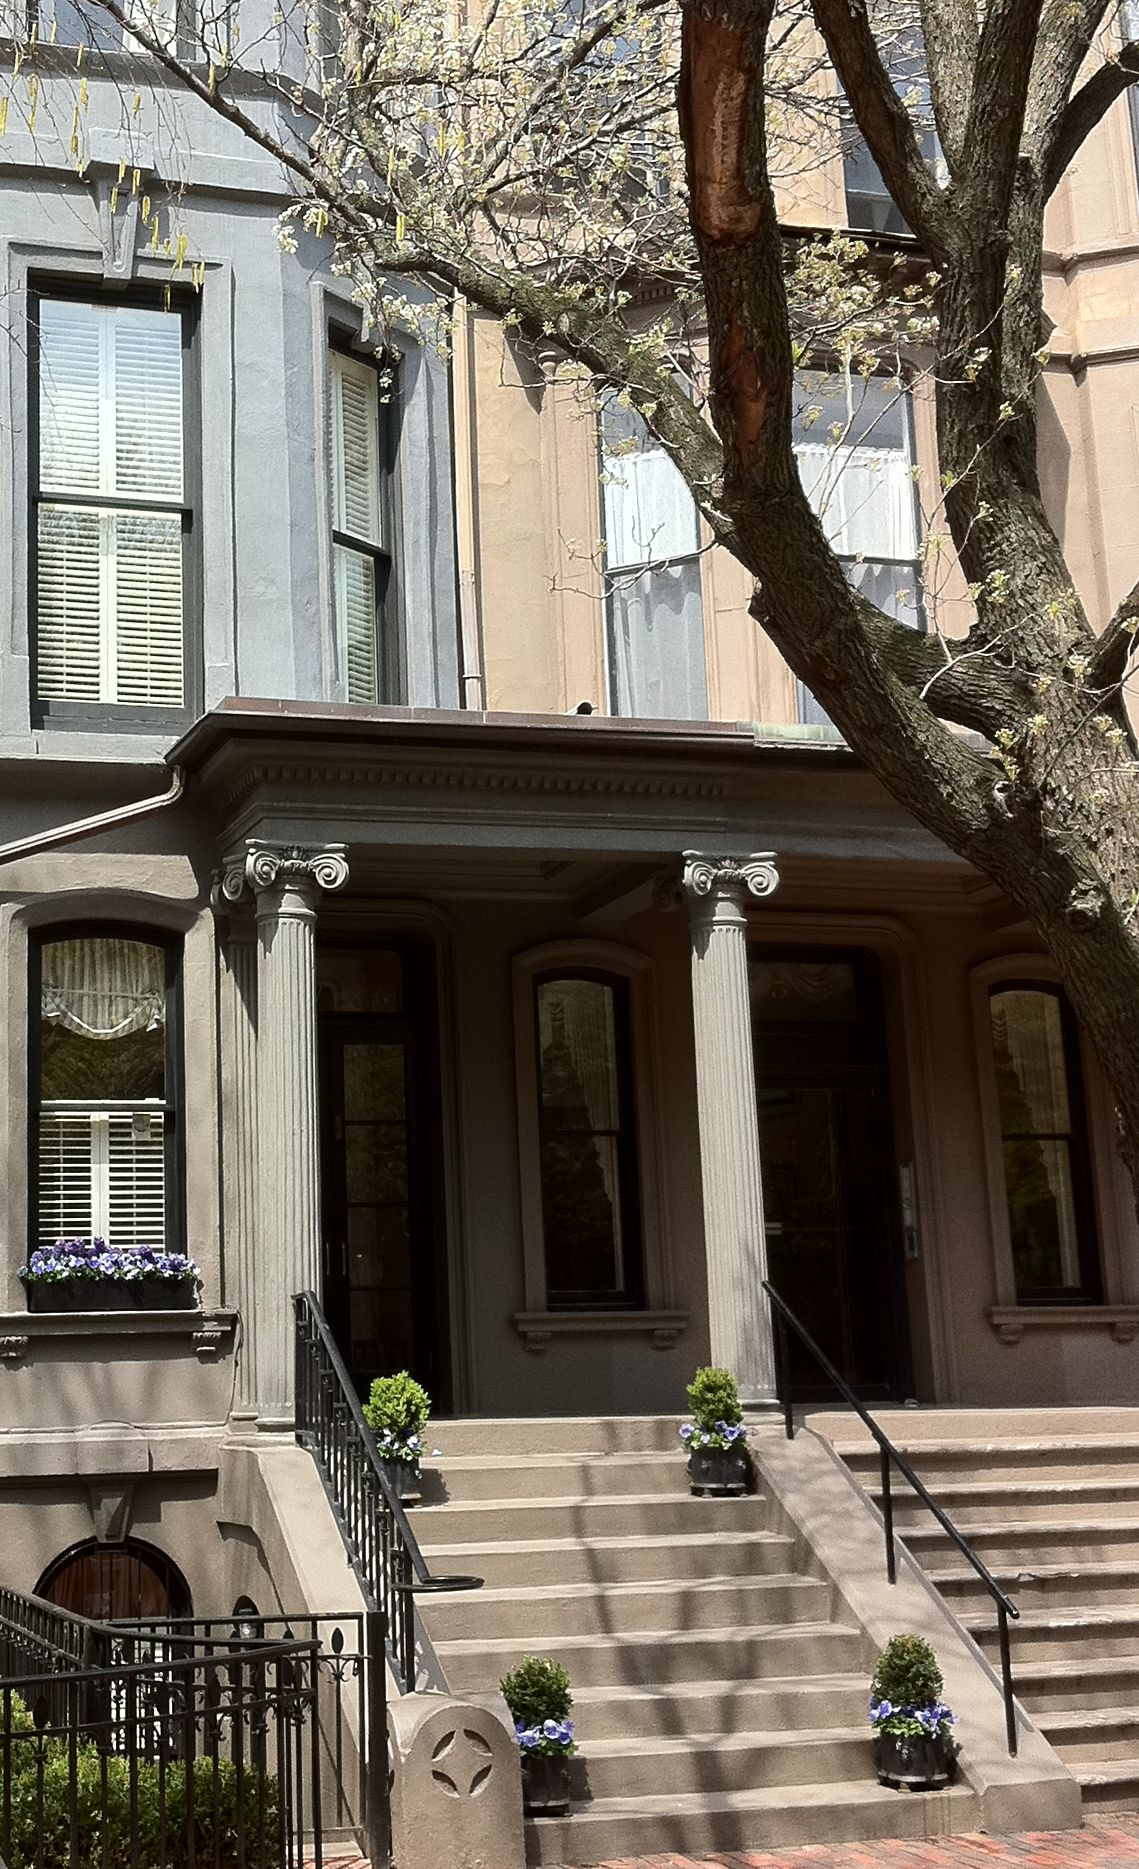 This exquisite two unit condominium is located on the first block of Marlborough Street in Boston's Back Bay. This stately home, built in 1863, is a perfect illustration of how Murphy and Jordan and Brownstone partner up to provide complete protection, both inside and out.